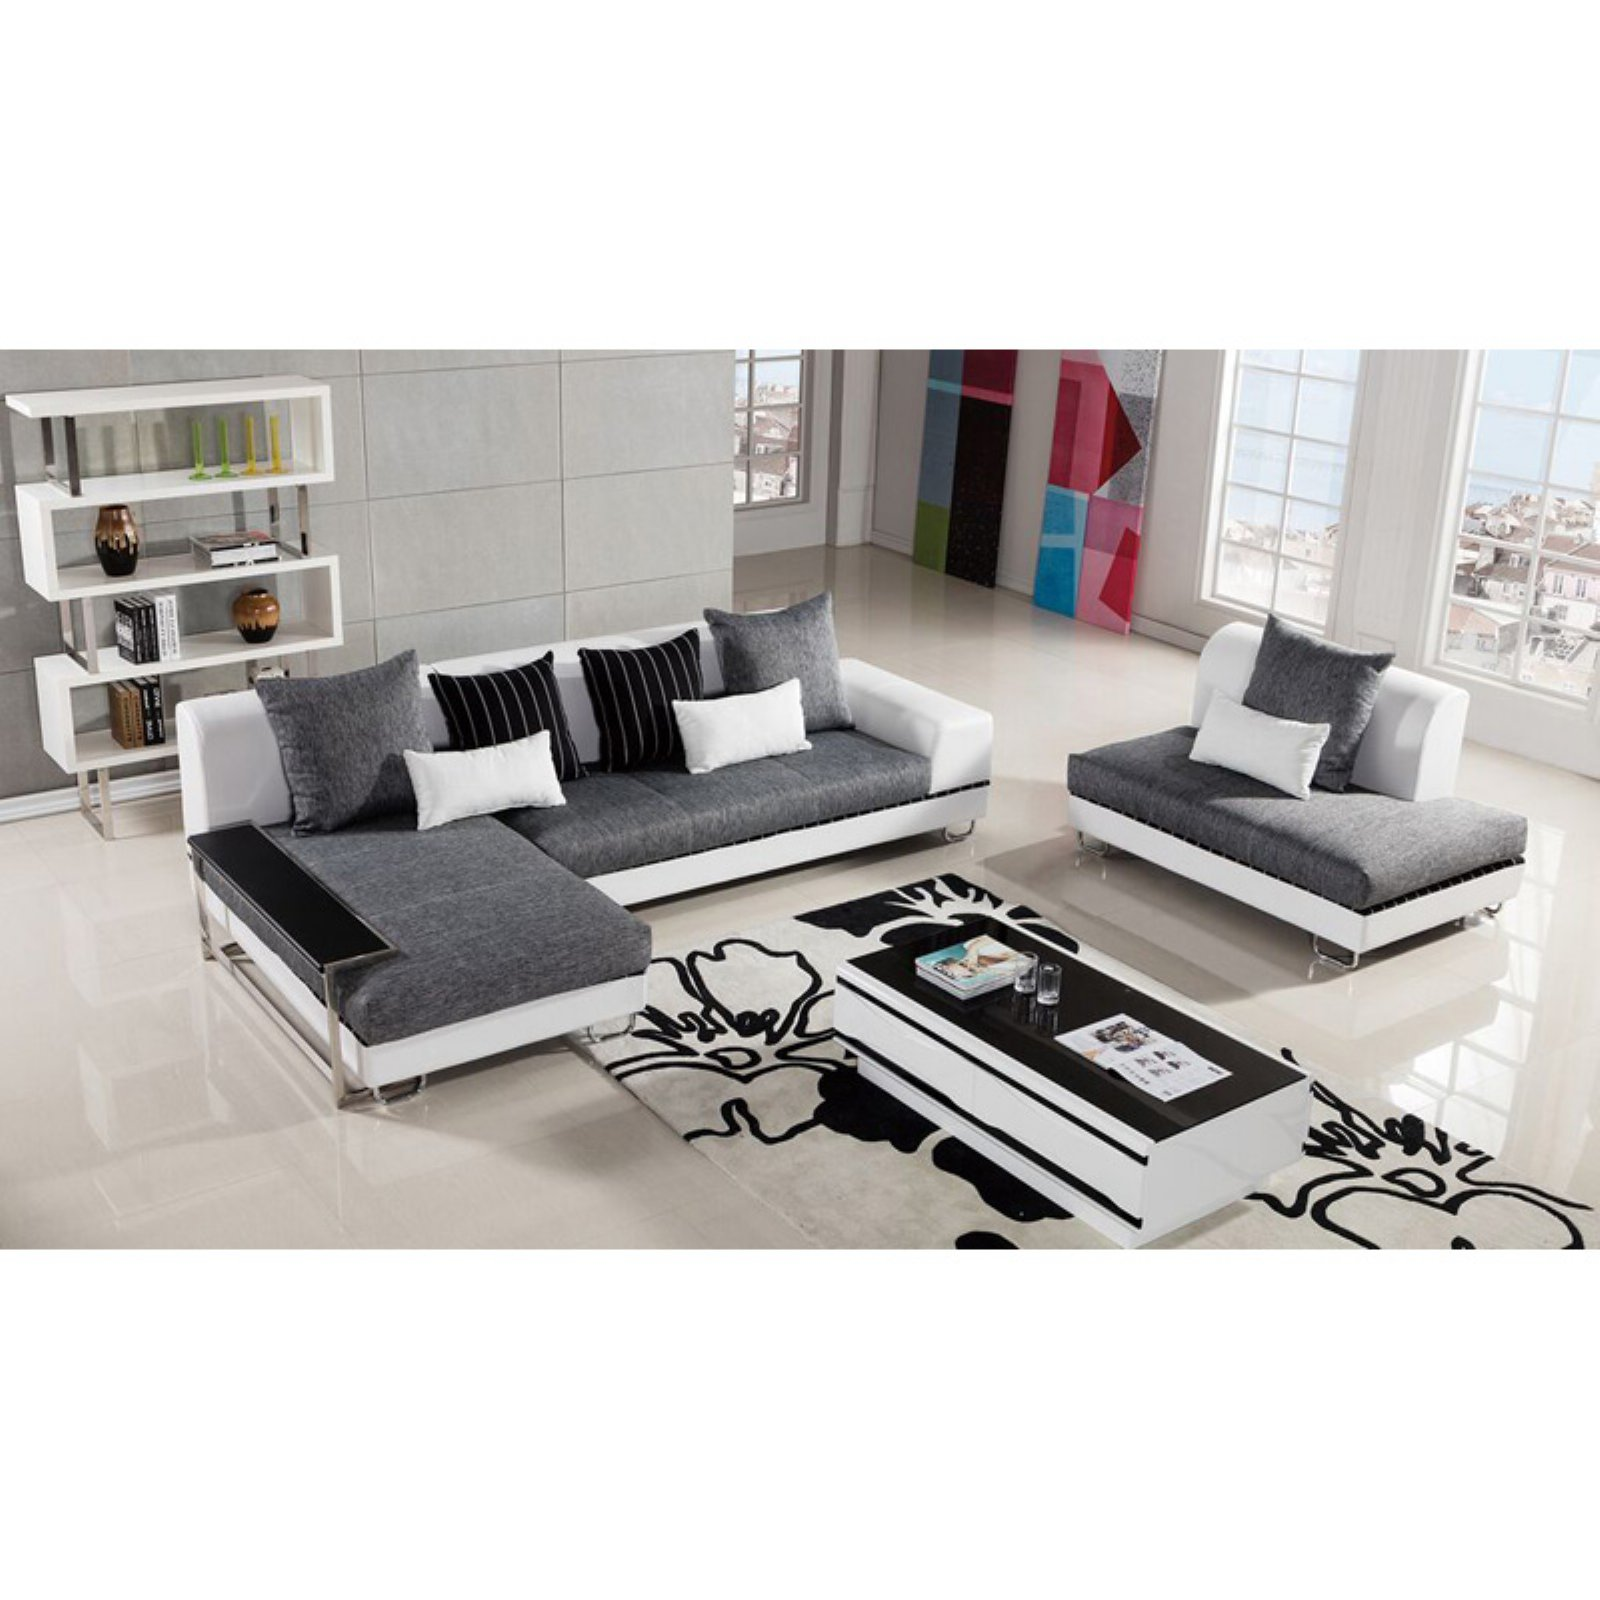 American Eagle Furniture Portland Upholstered Sectional Sofa with Chaise